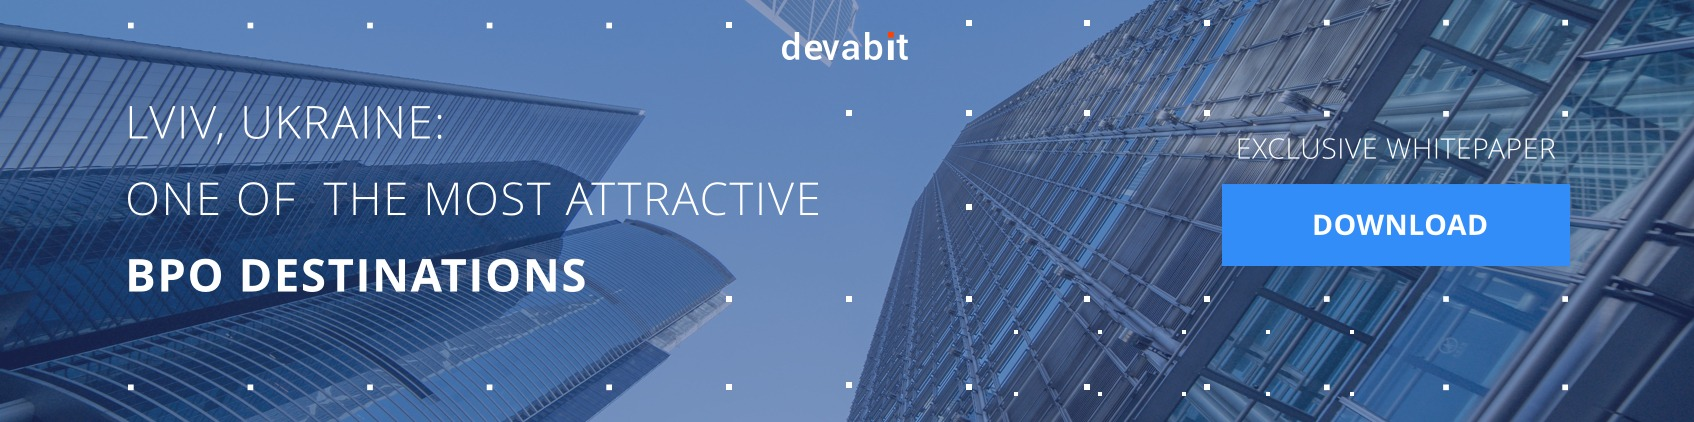 Download Exclusive Whitepaper about One of the most attractive BPO destinations Lviv Ukraine